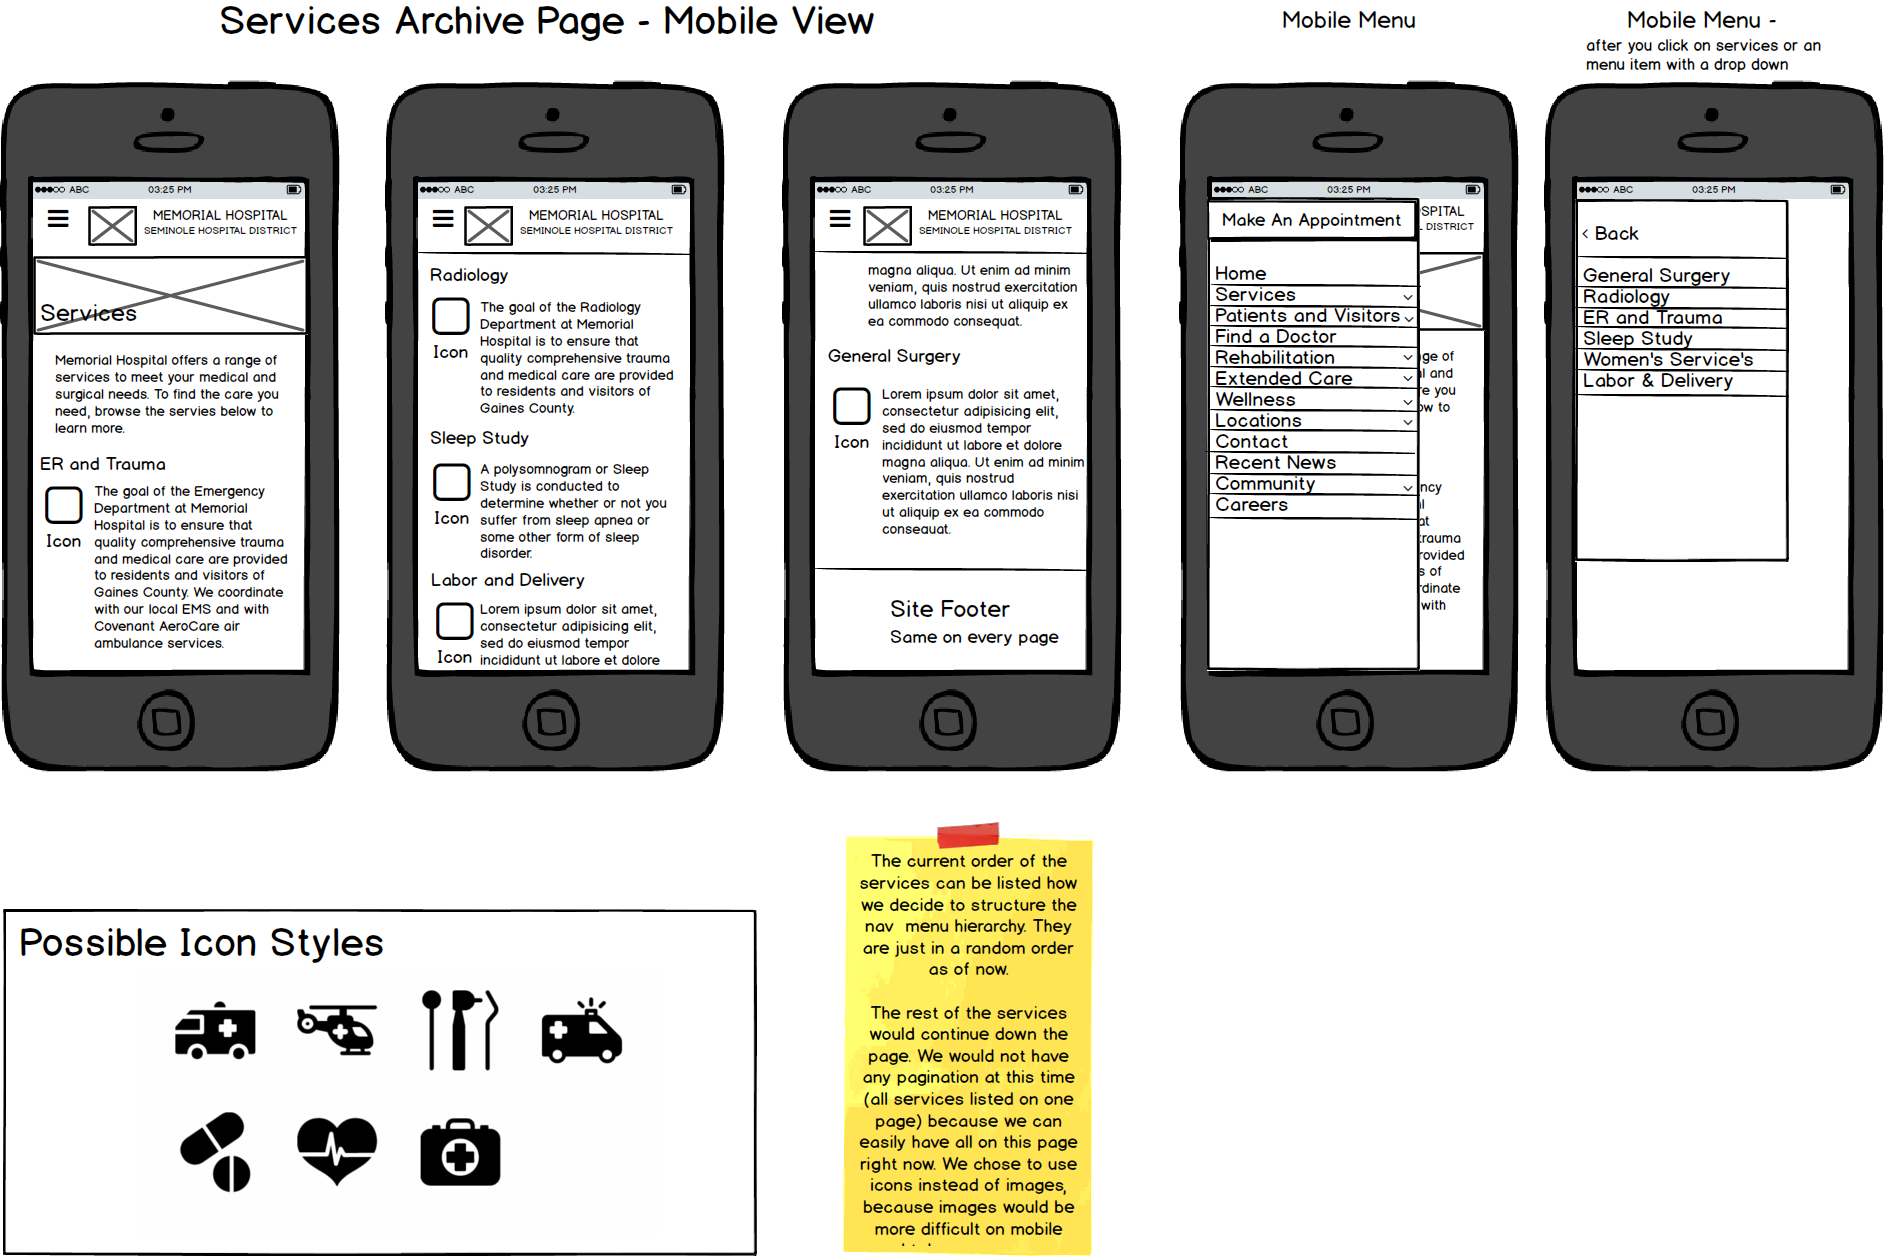 mobile-services-archive-page